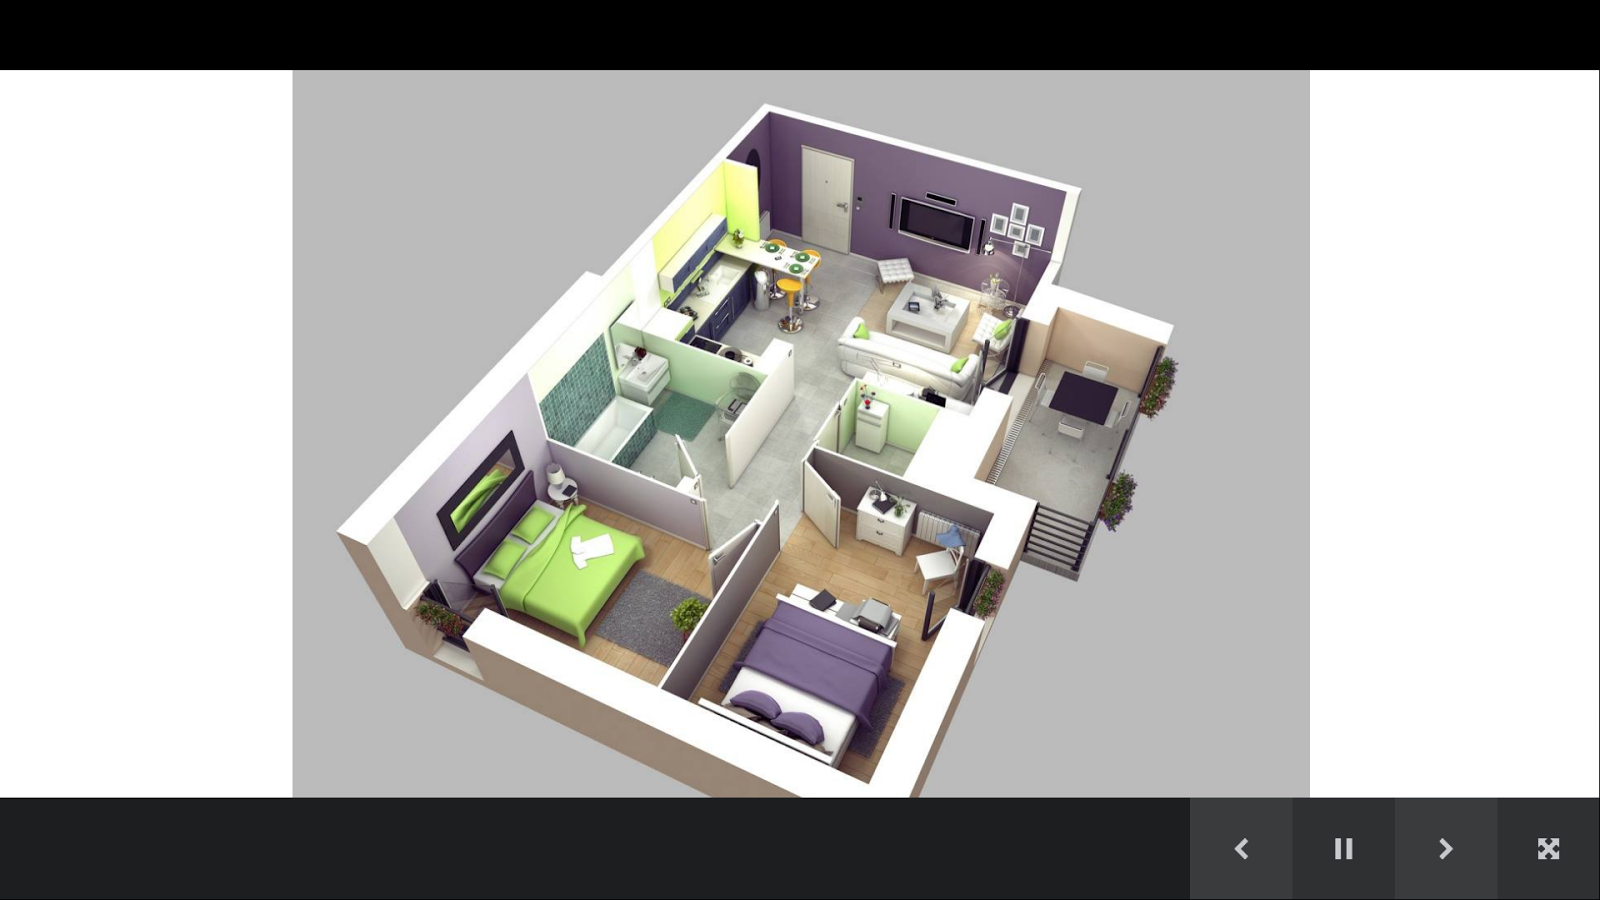 3D House Plans  screenshot. 3D House Plans   Android Apps on Google Play